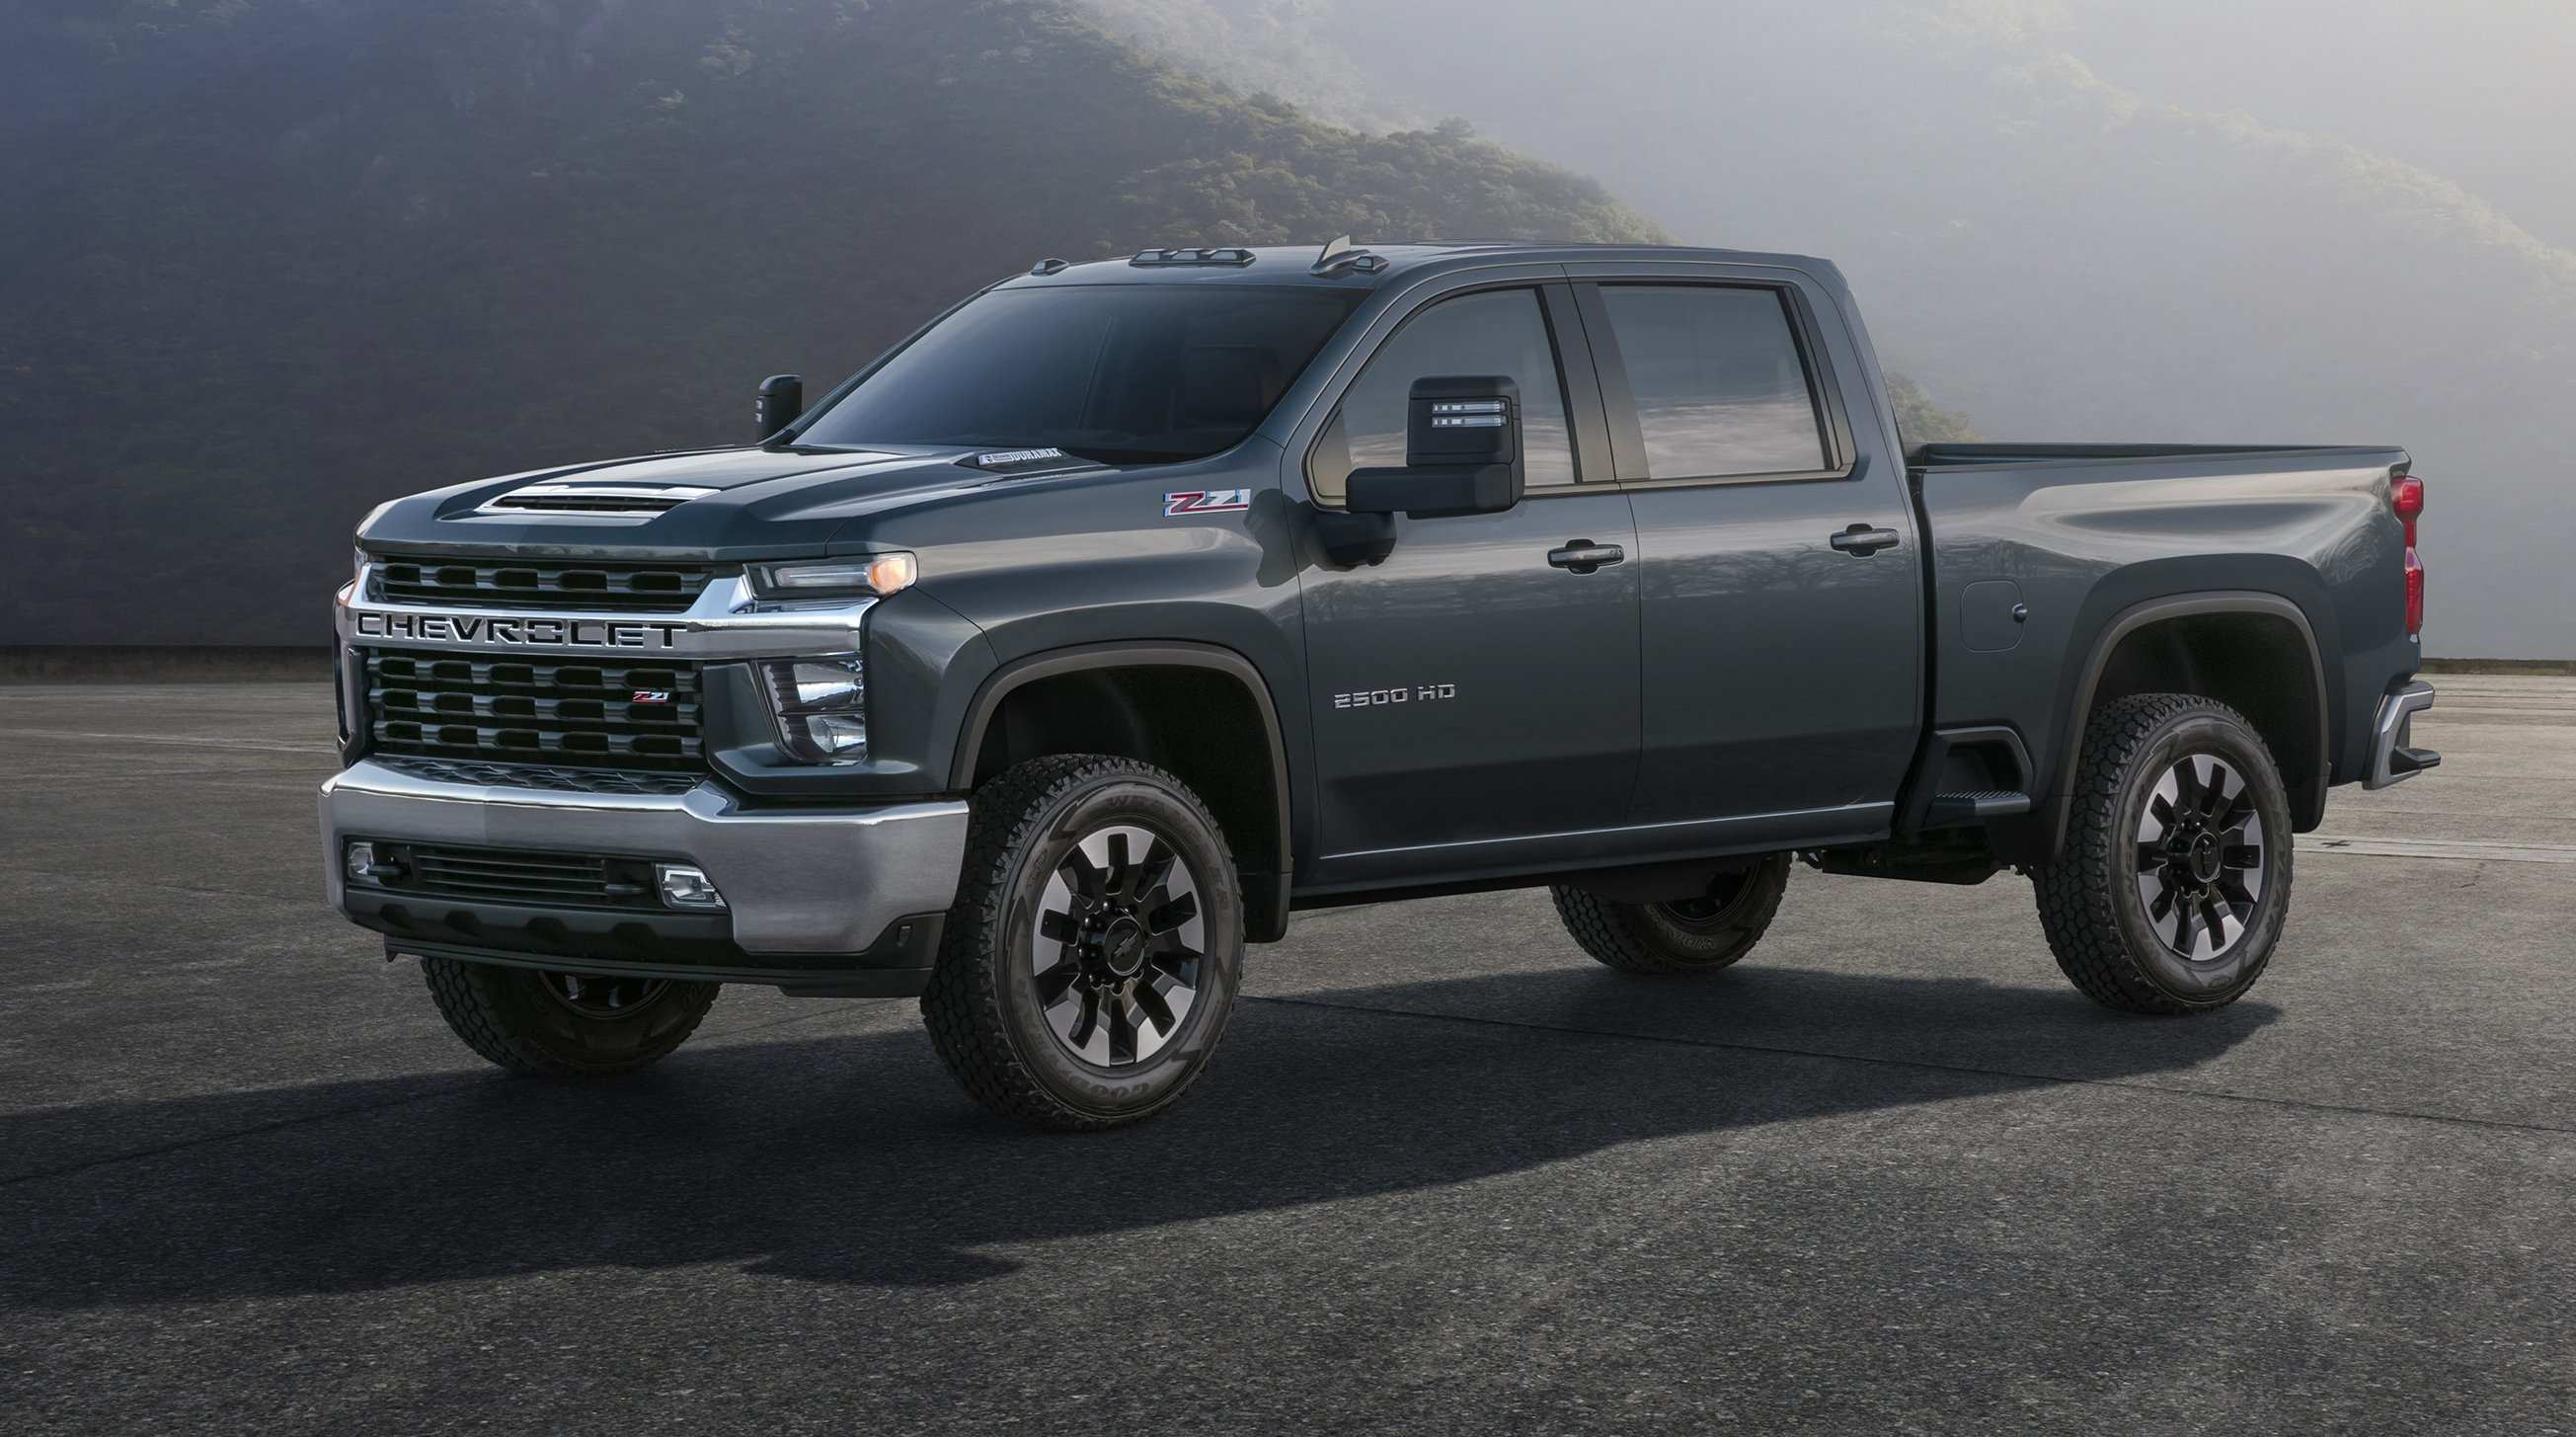 82 Concept of 2020 Chevrolet Lineup Pricing with 2020 Chevrolet Lineup